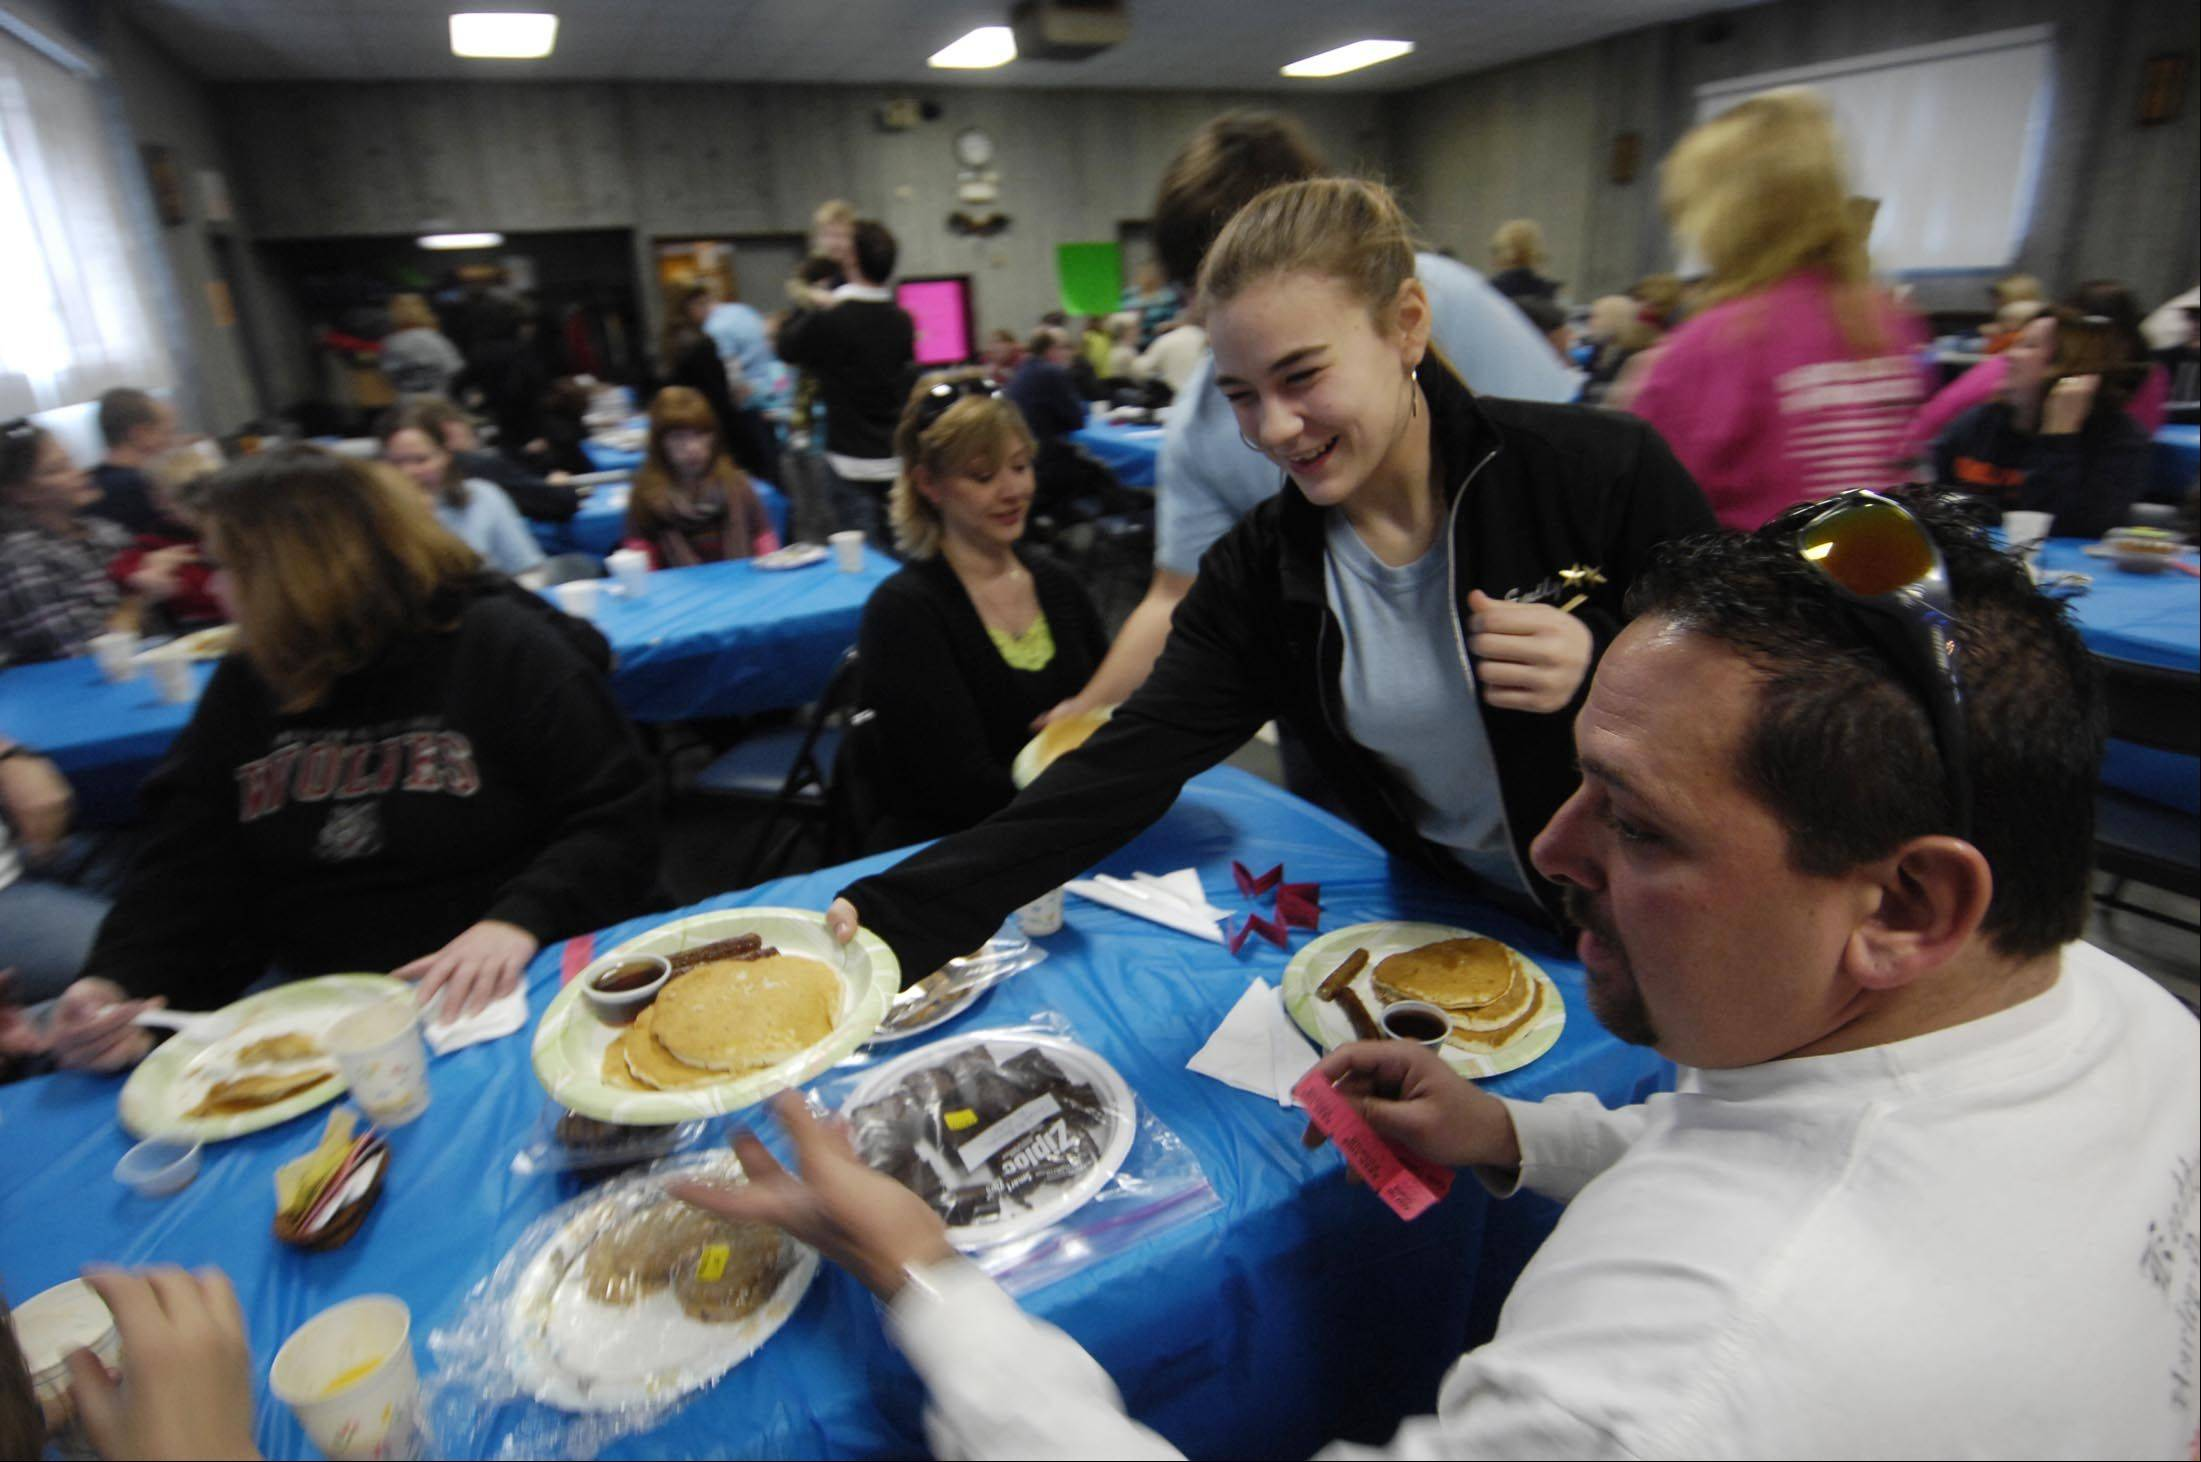 Emily Weyers, 18, served plates of warm food at a pancake breakfast in January that benefited the Allegiance Youth Color Guard, of which Weyers was a member for three years. Weyers was killed Monday walking along Algonquin Road in Lake in the Hills.